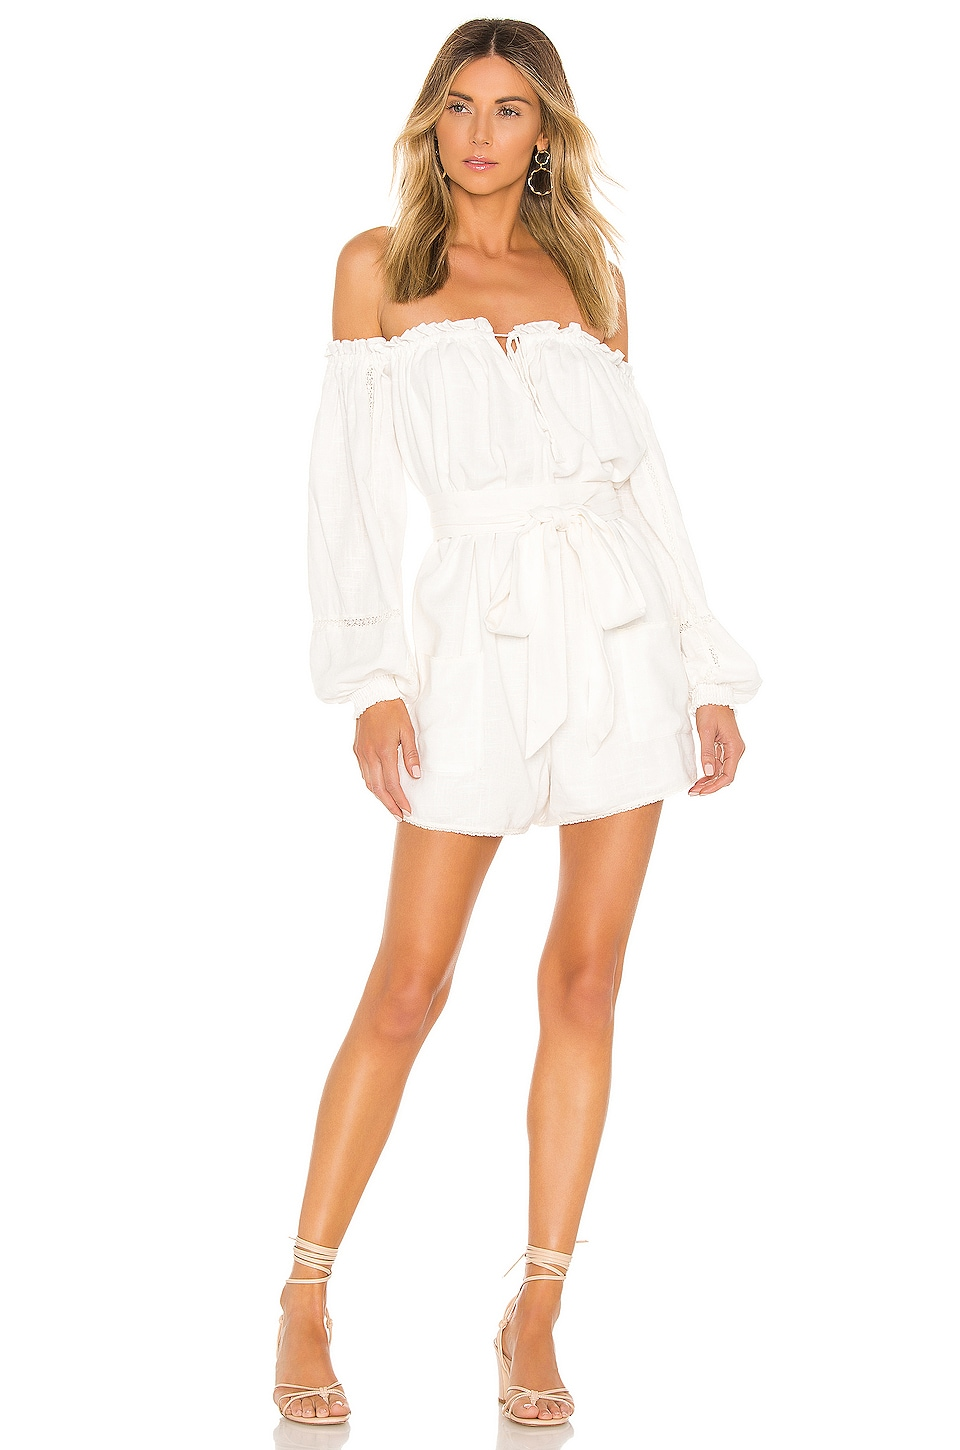 Spell & The Gypsy Collective Milla Romper in Off White